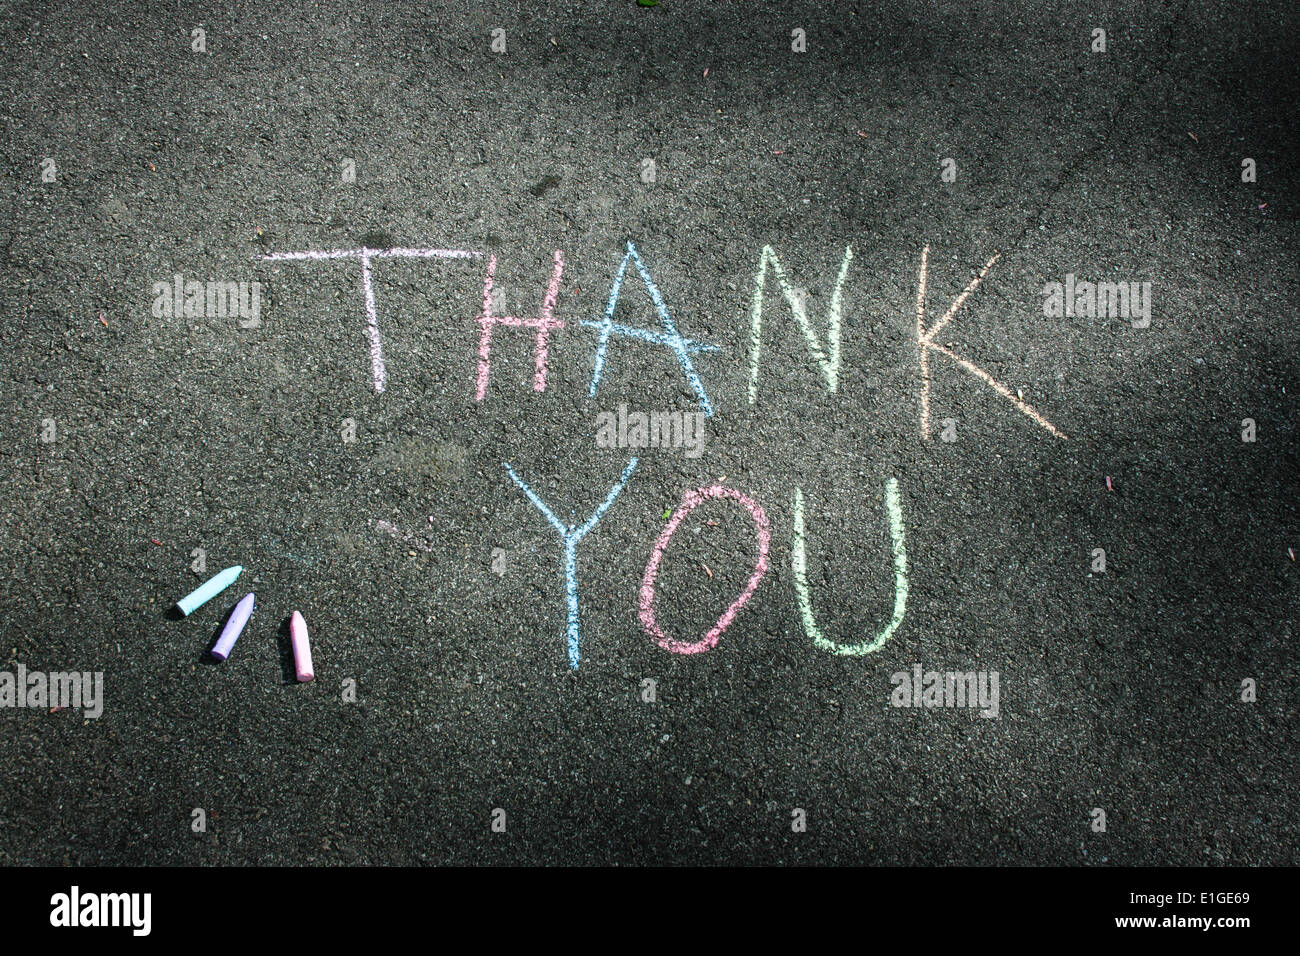 THANK YOU Sidewalk Chalk Message - Stock Image